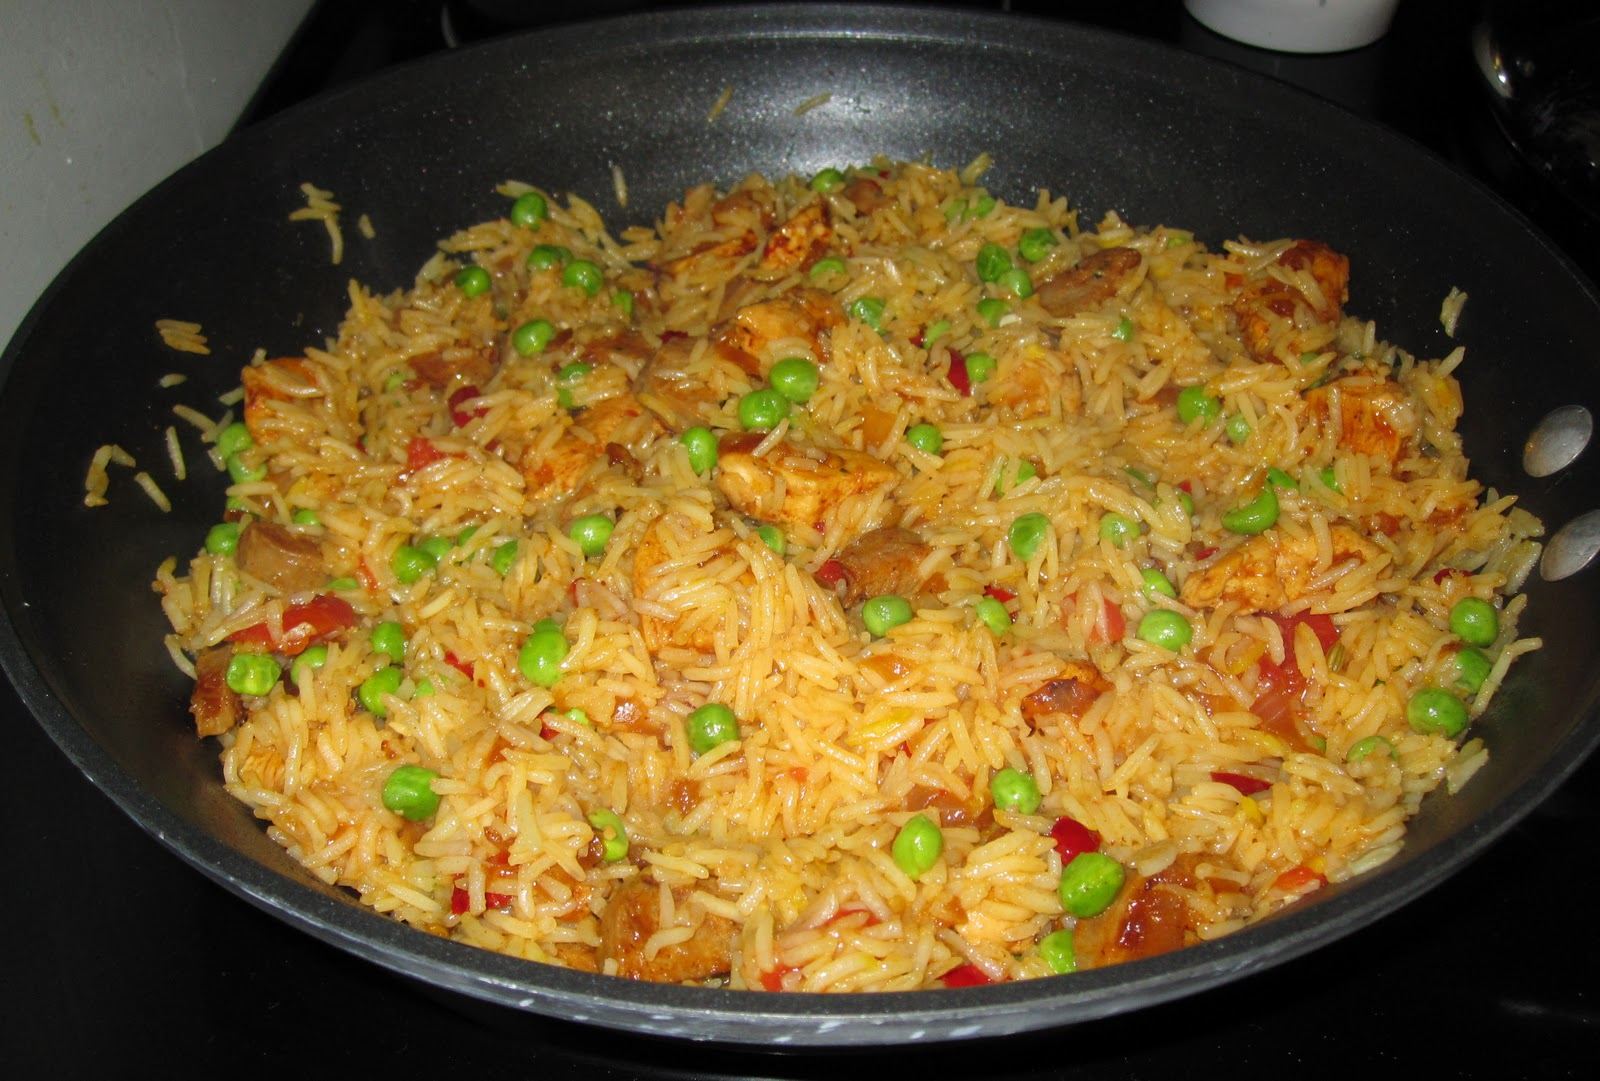 Confessions of a Cookaholic: Chicken and Sausage Paella